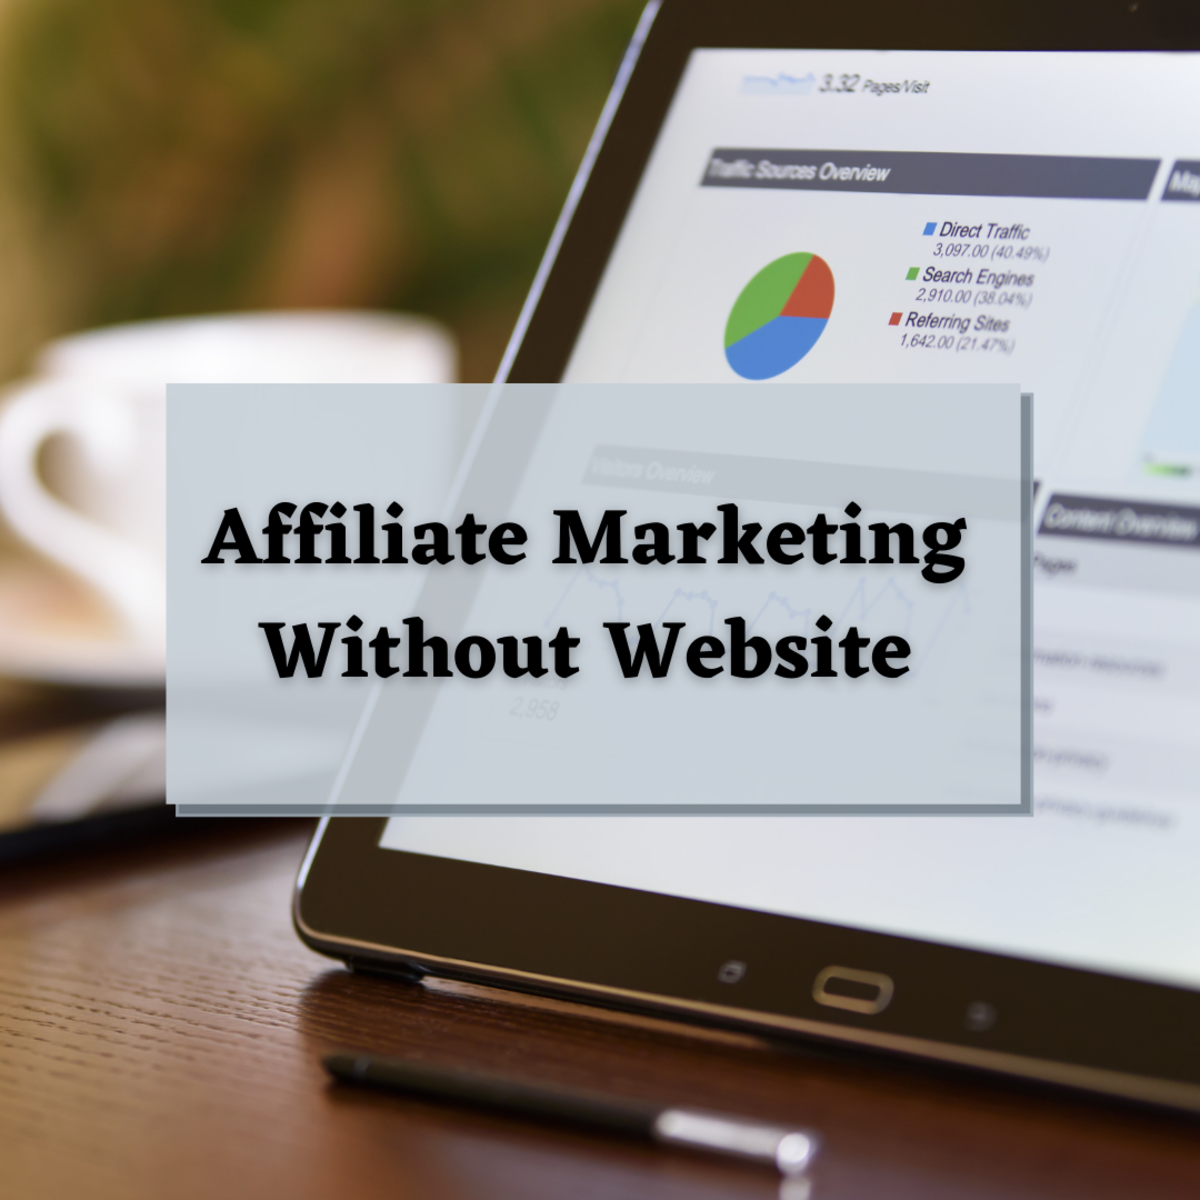 4 Little Tricks to Achieve the Best Results in Affiliate Marketing Without Website.